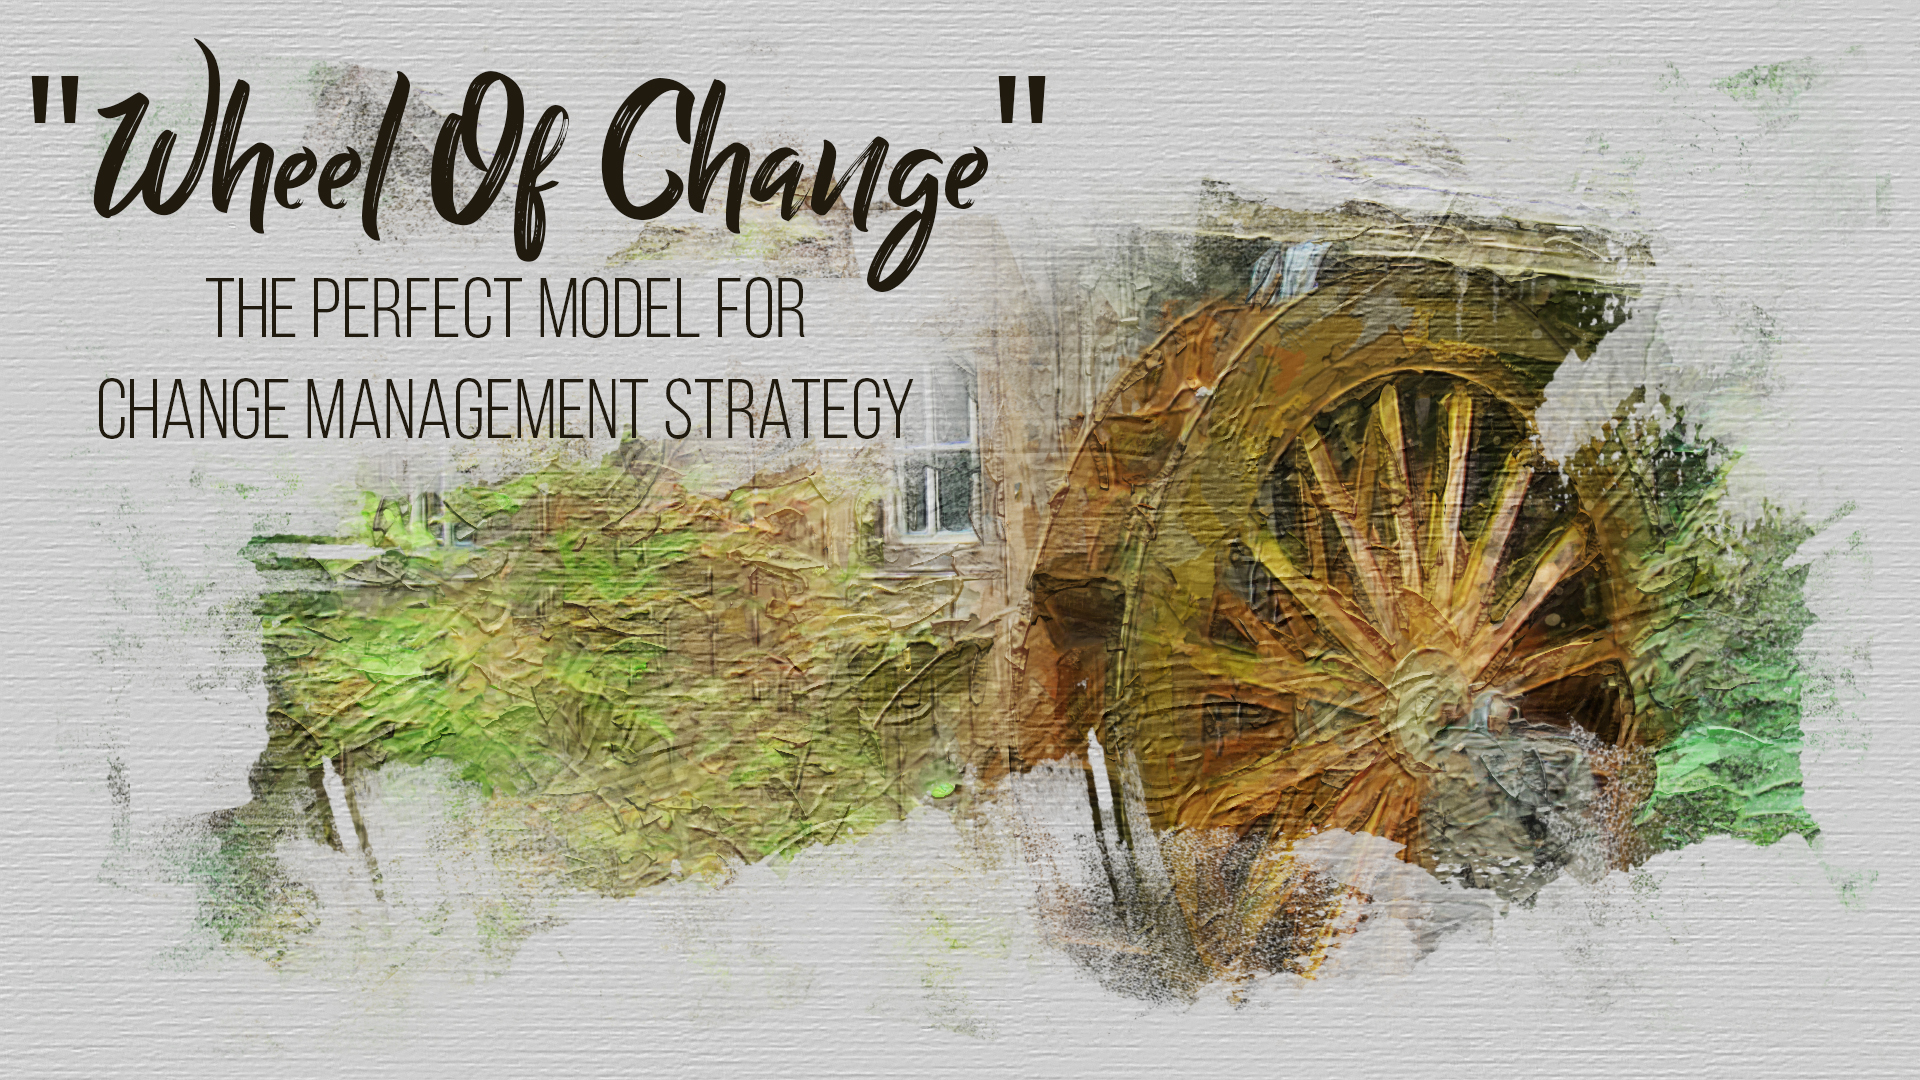 Wheel Of Change - The Perfect Model for Change Management Strategy